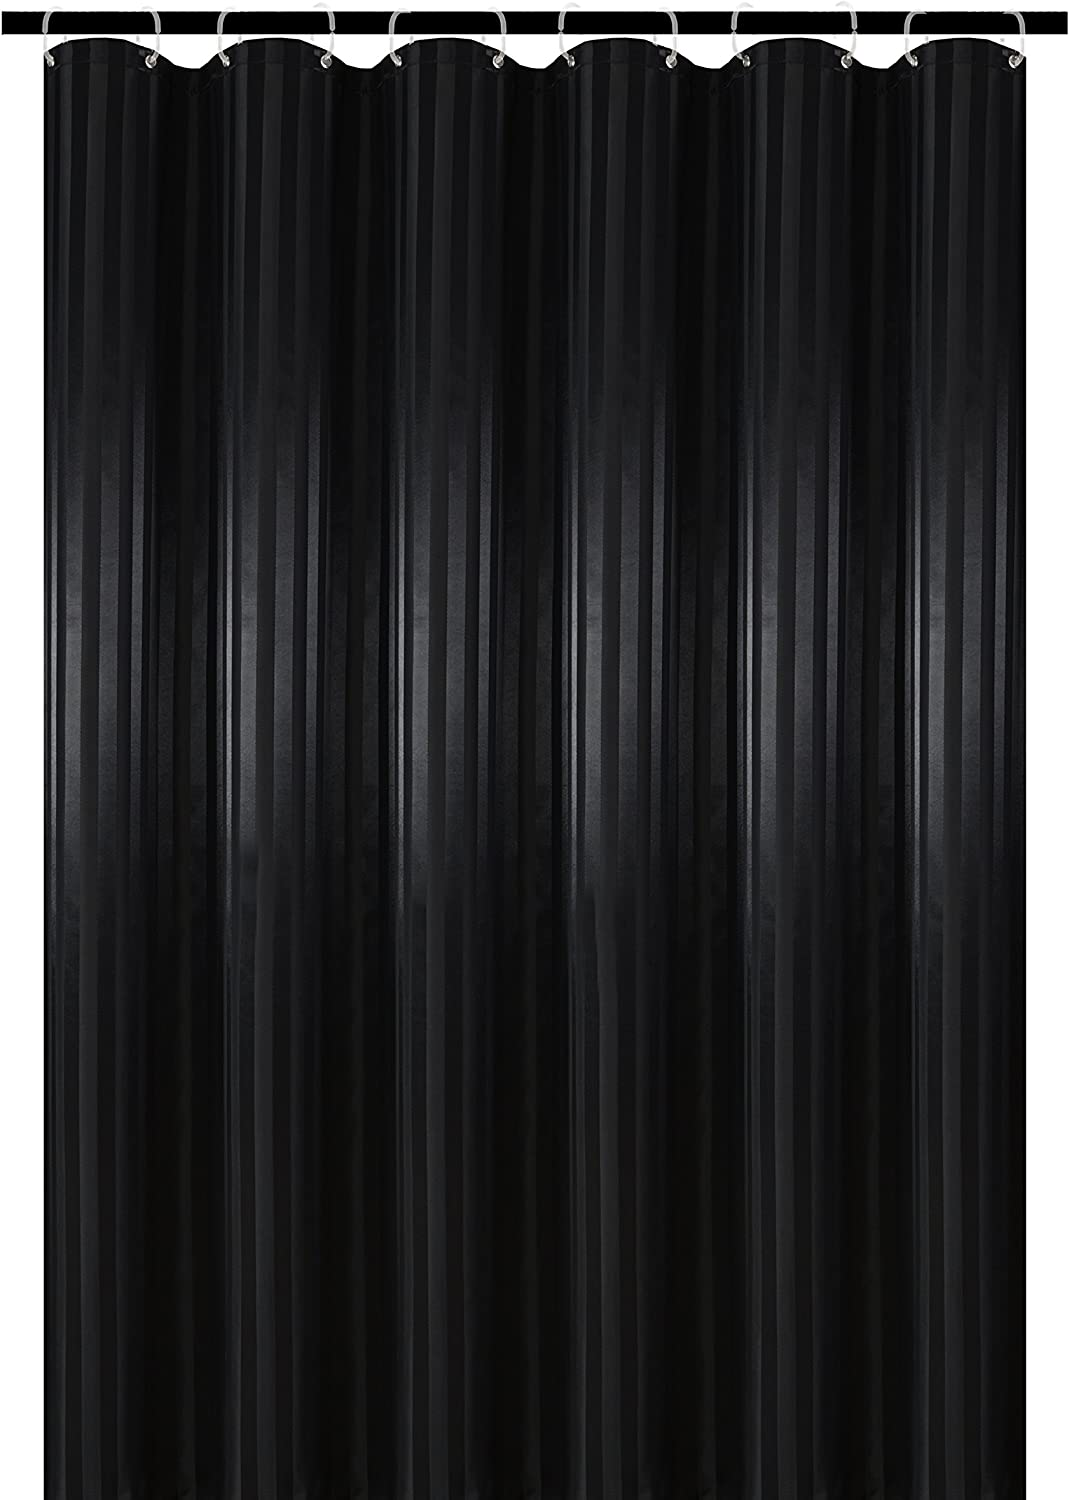 Biscaynebay Fabric Shower Curtains, Water Repellent Damask Stripes Bathroom Curtains, Black 72 by 72 Inches with 12 Hooks